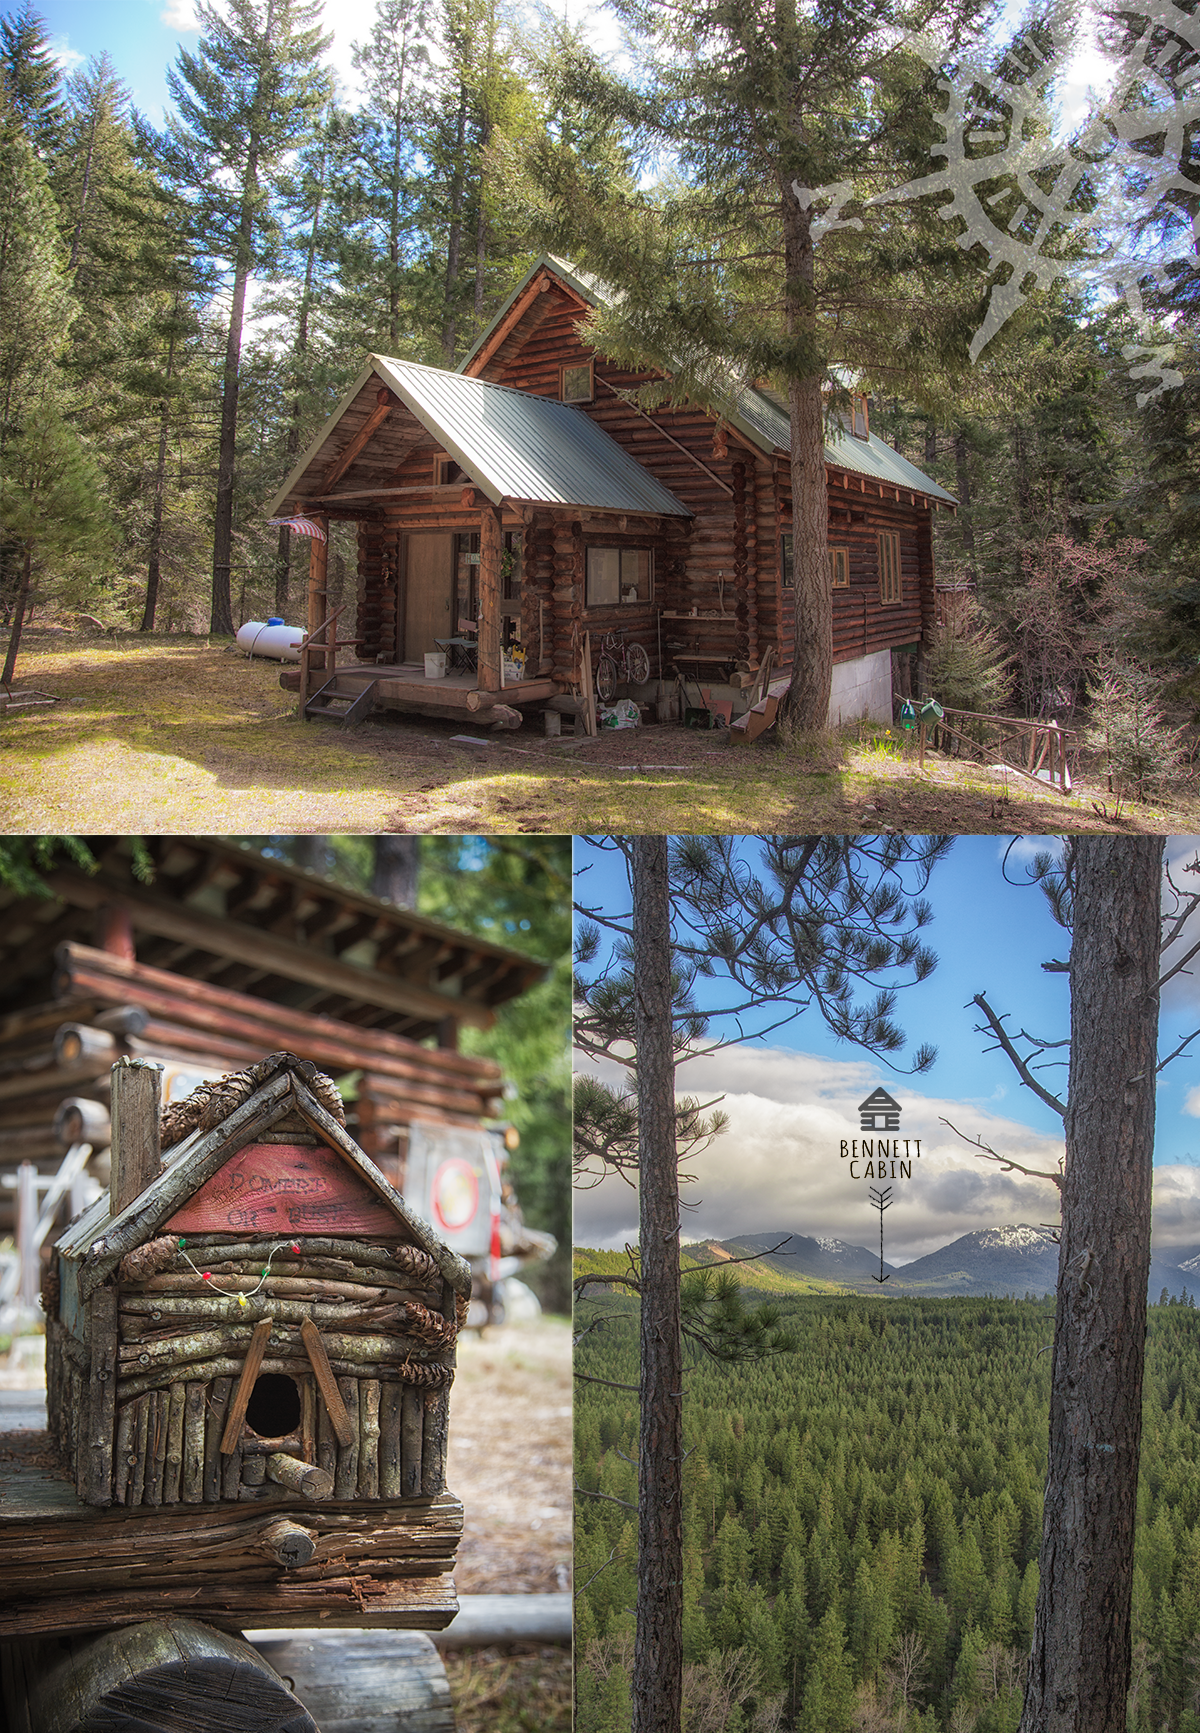 Bennett Cabin in Eastern Washington